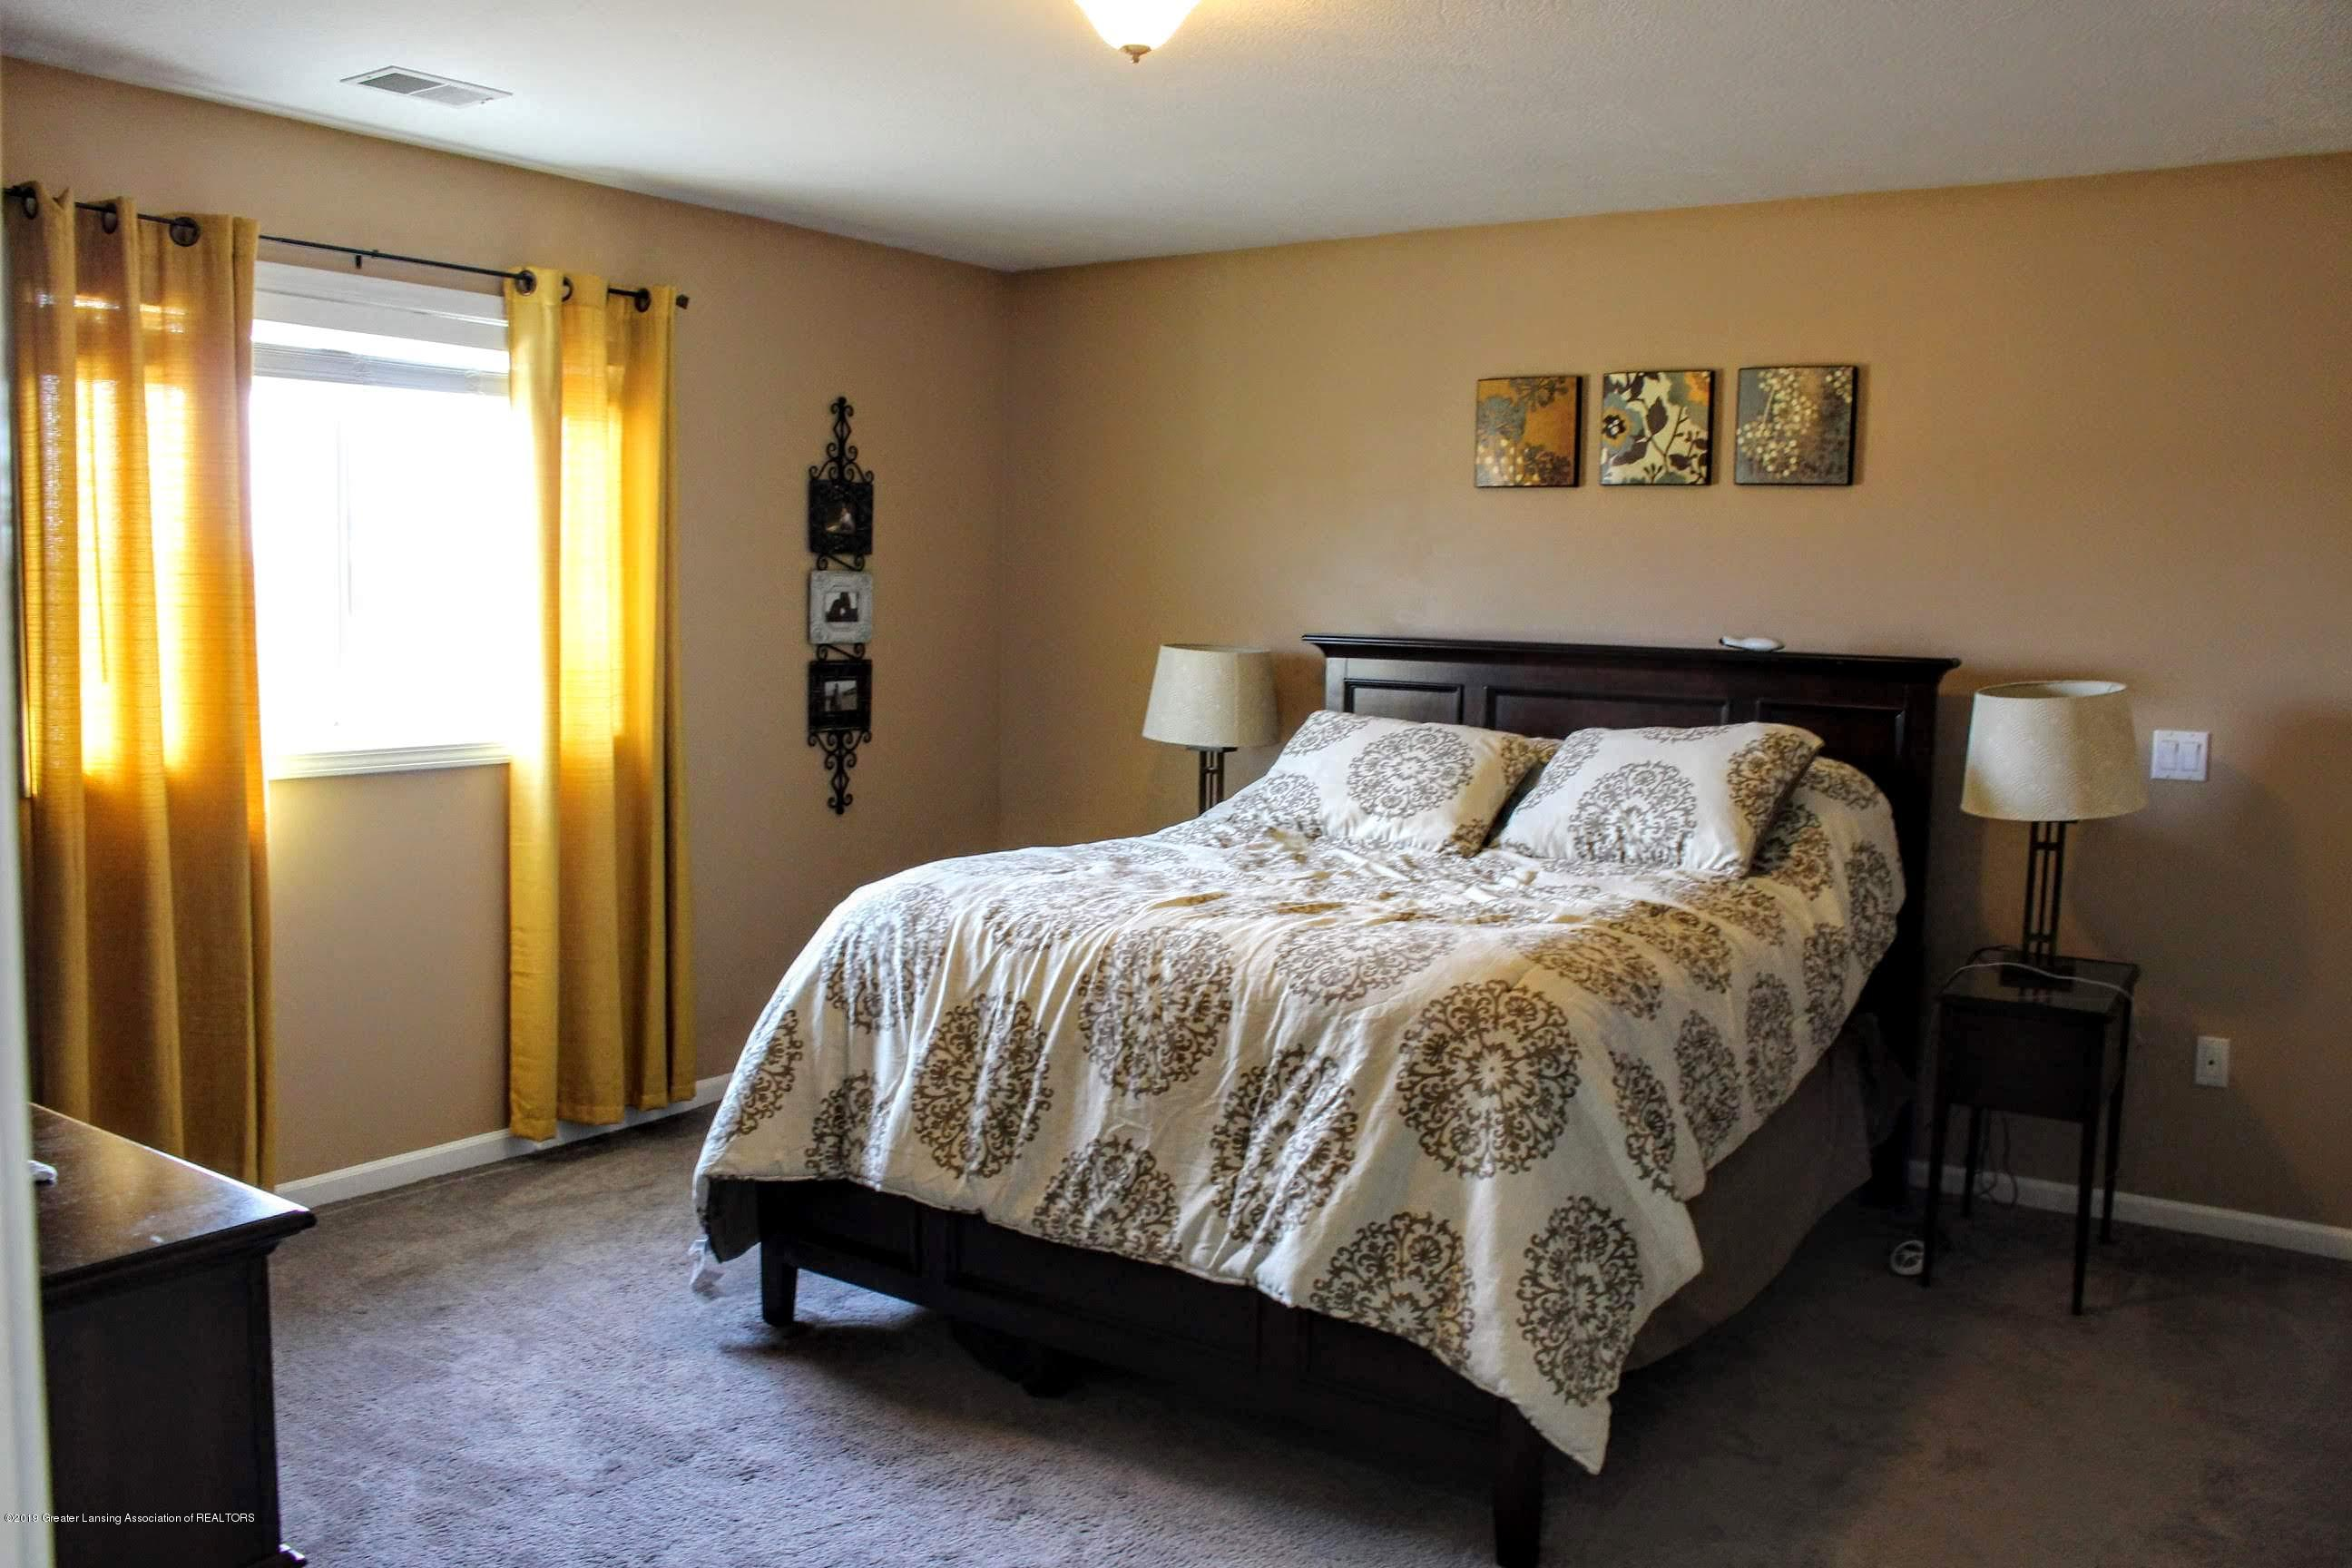 3099 E Price Rd - Bedroom - 11